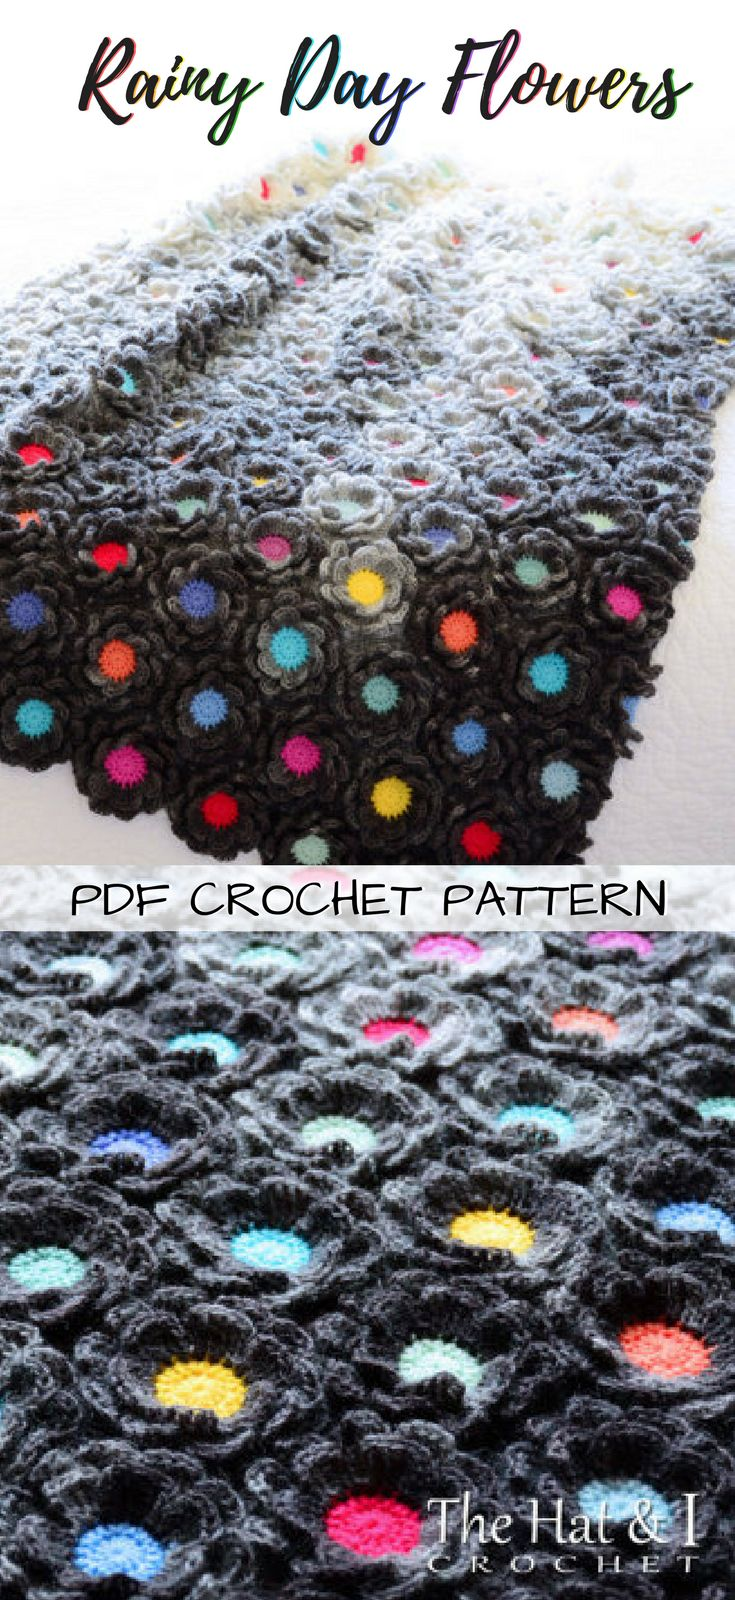 Rainy Day Flowers crocheted afghan pattern. Great throw blanket for a nursery, kid's room or even a teen room! #etsy #ad #pdf #crochet #pattern #download #instant #printable #crochetblankets #crochetafghans